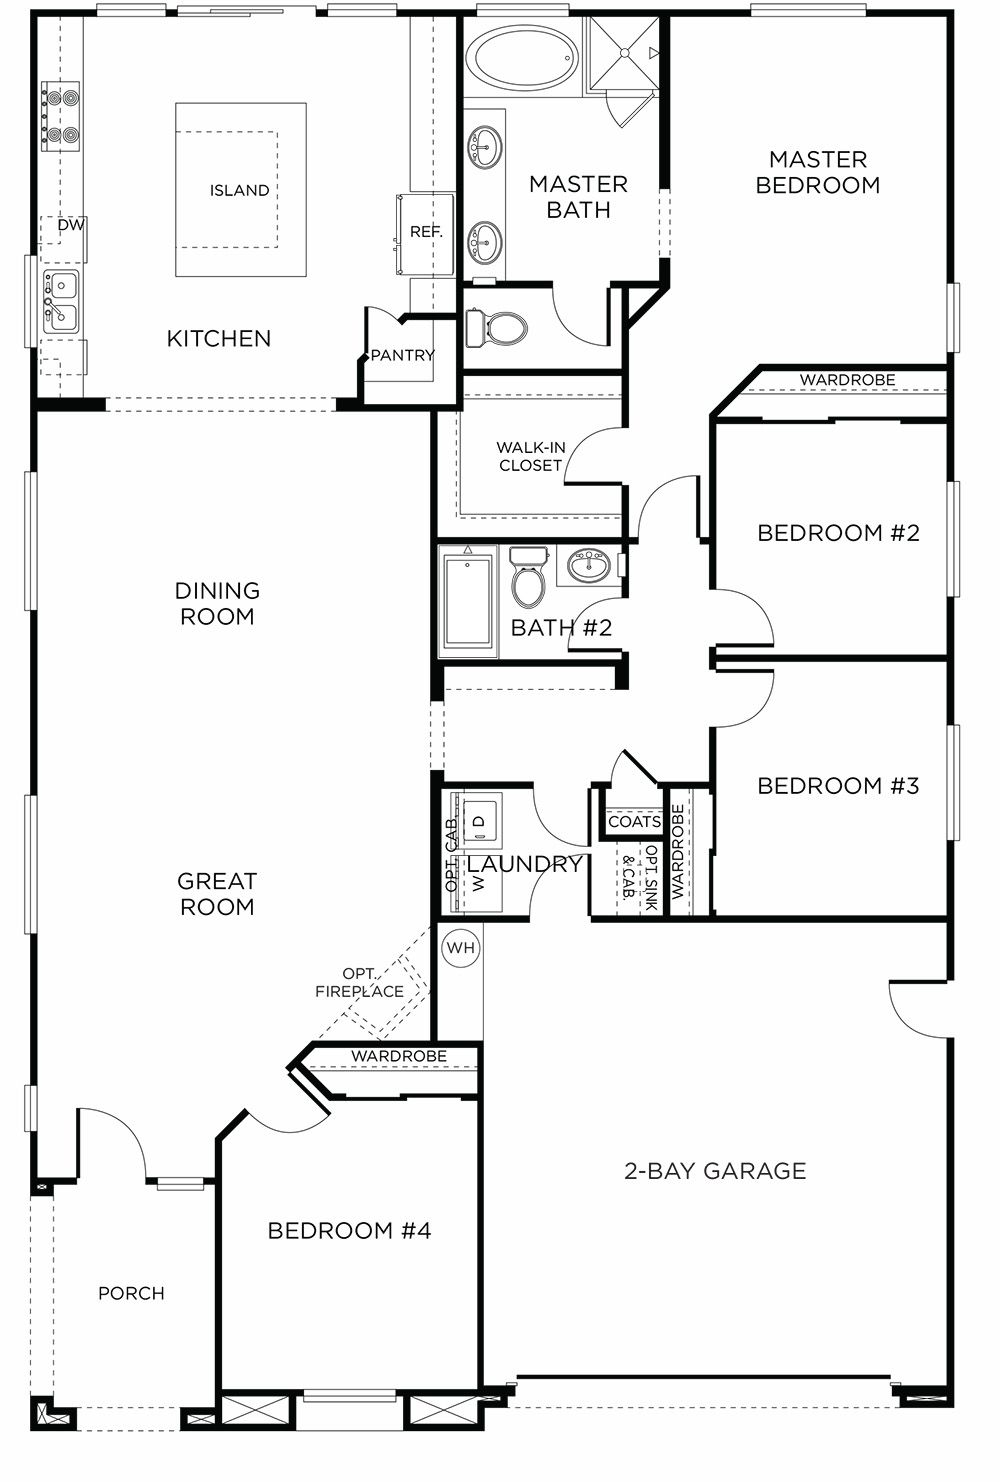 Pardee Homes Los Angeles Floor Plans Floor Plans Home Design Floor Plans House Plans